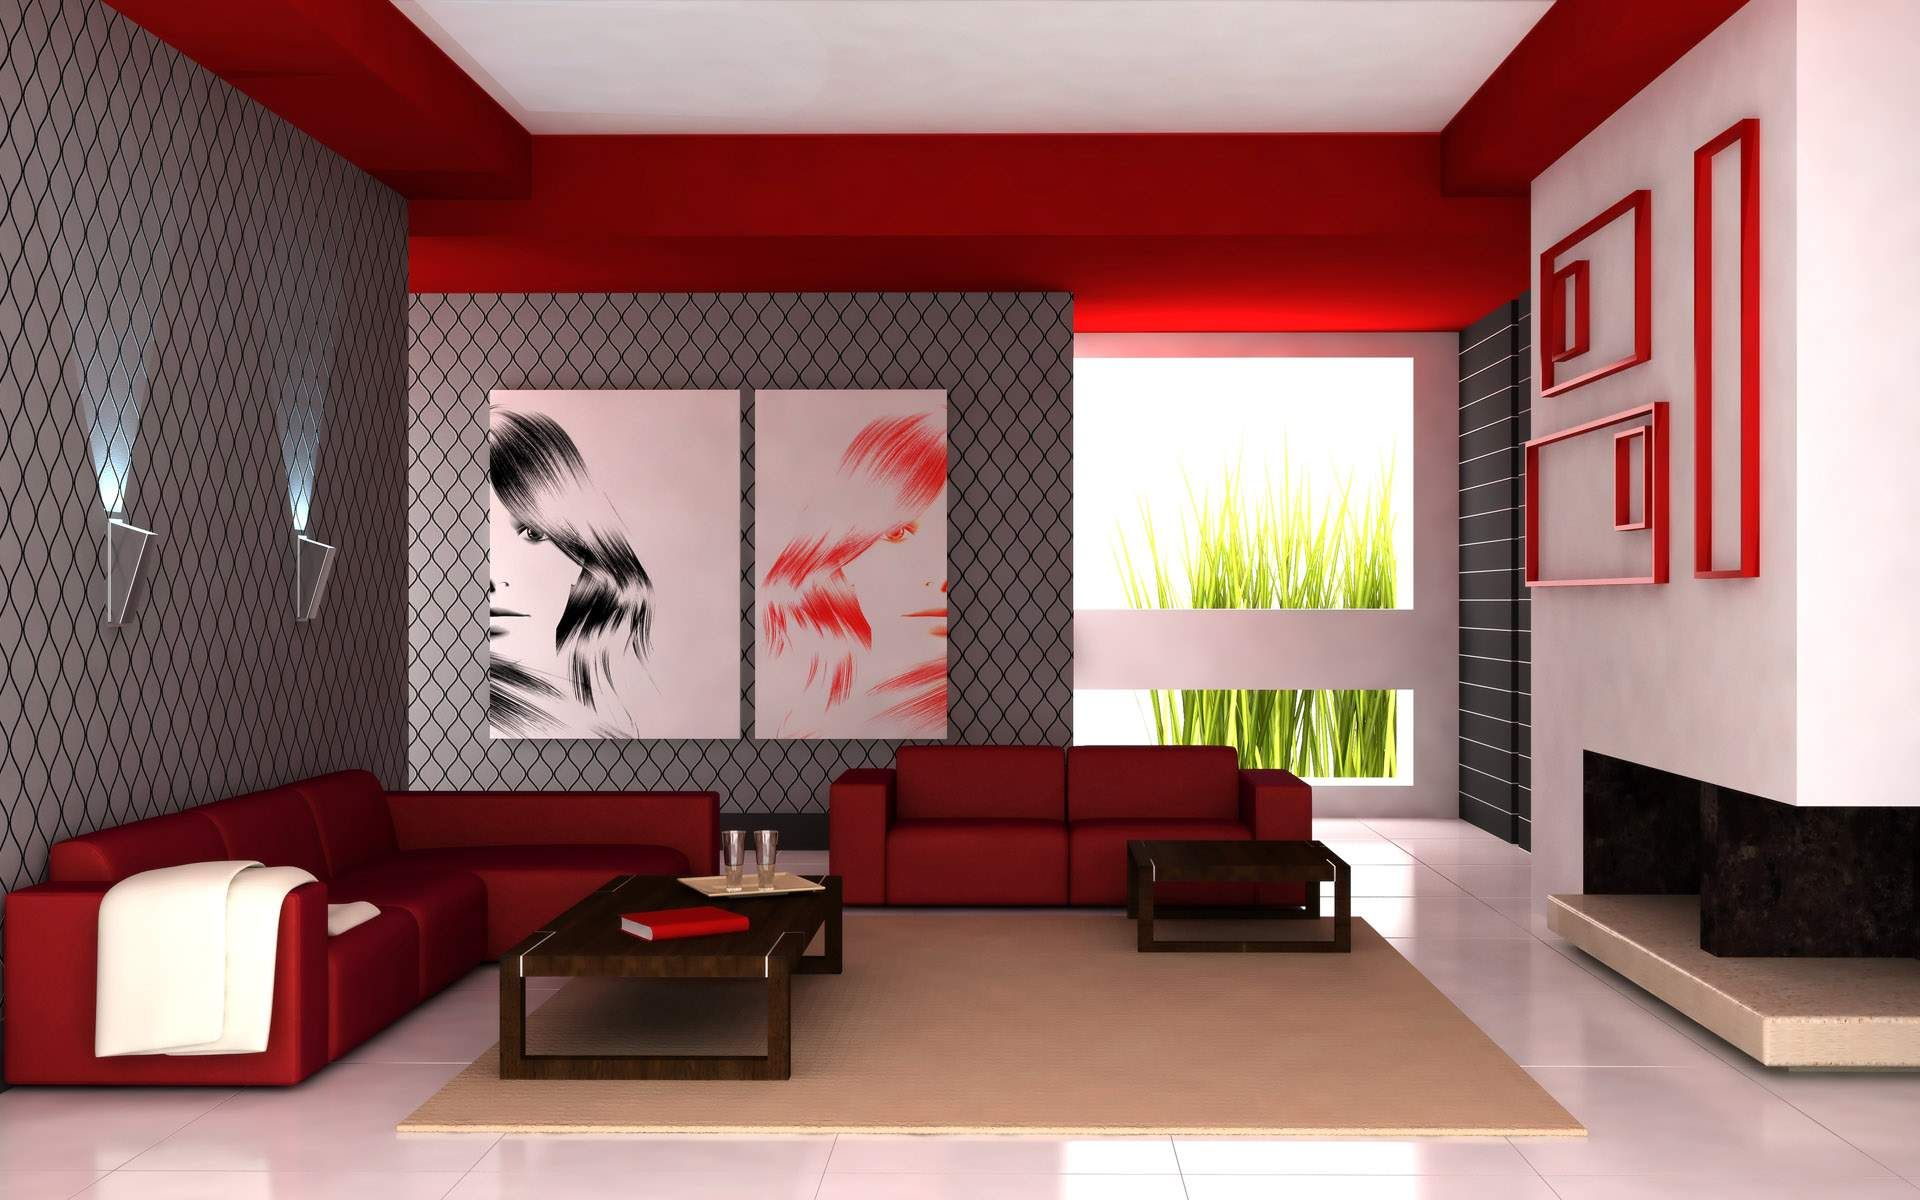 interior design living room - Interior Design Ideas For Living Room